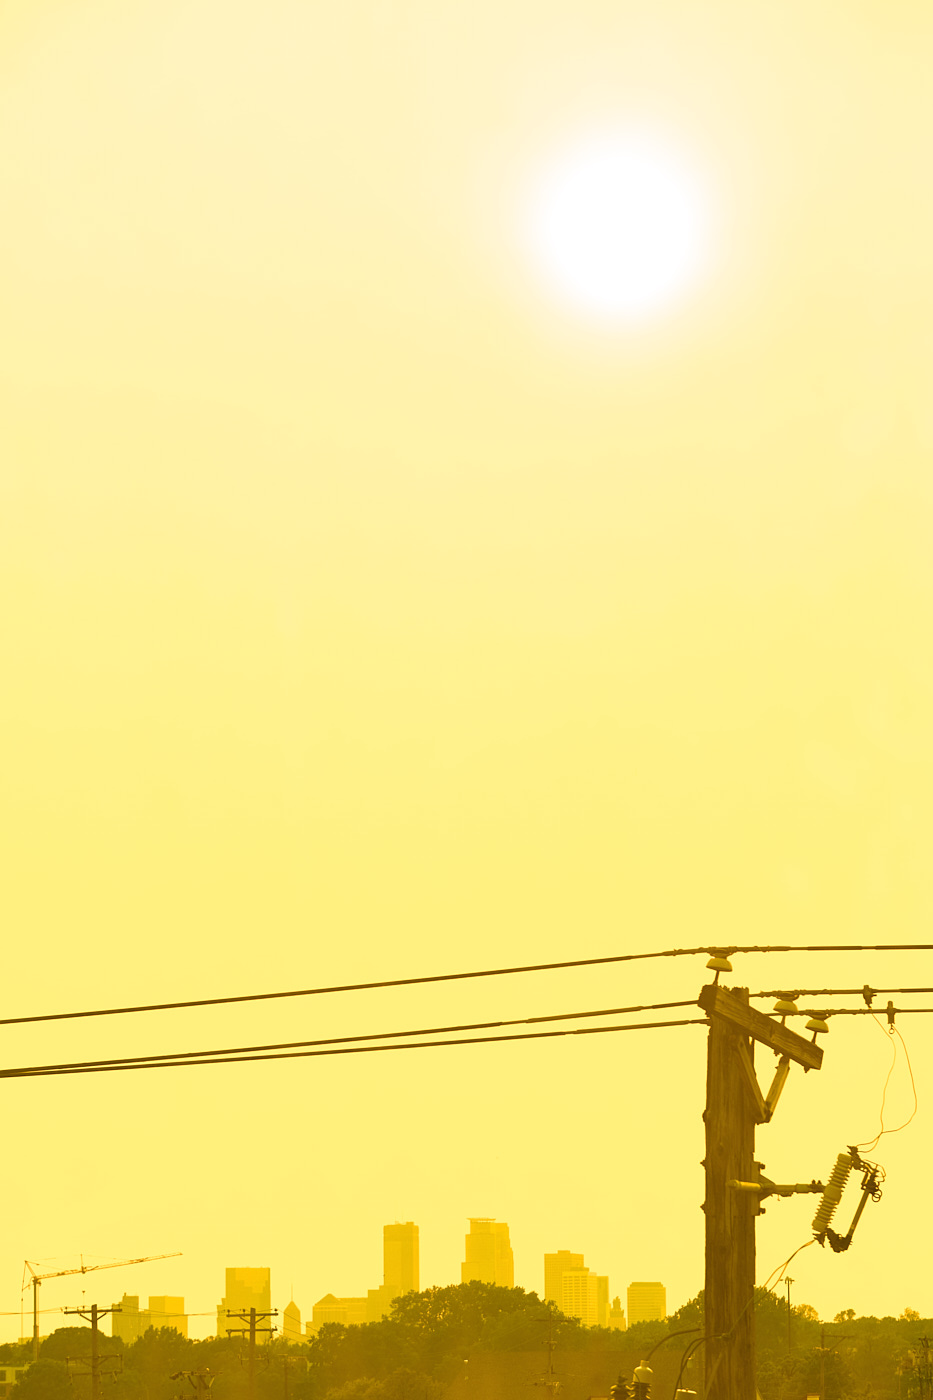 golden hour with power lines